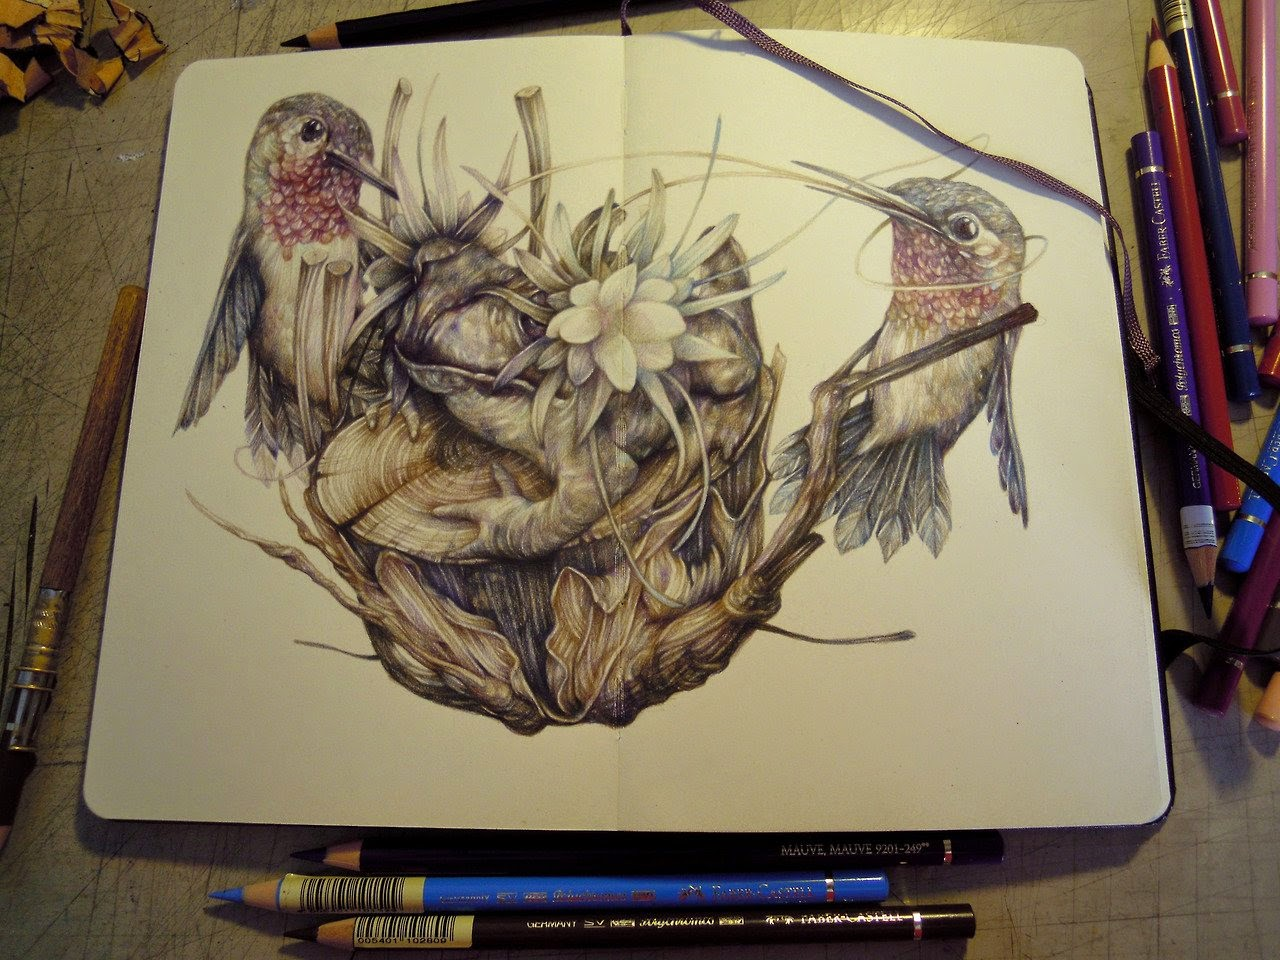 19-Marco-Mazzoni-Surreal-Animal-Drawings-www-designstack-co